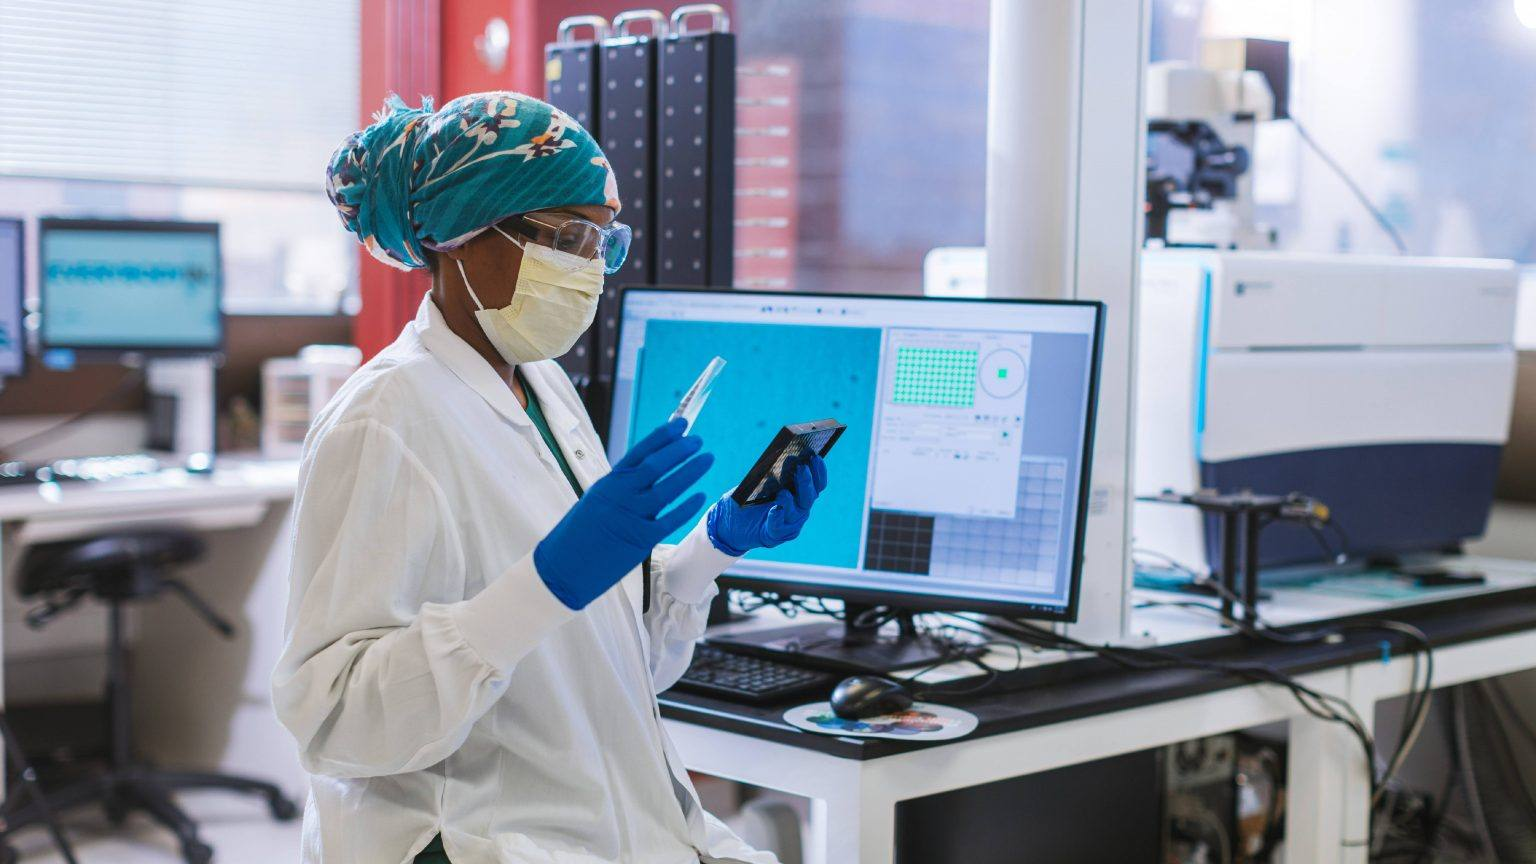 Mayo-Clinic-Laboratories-health-care-researcher-a-Black-woman-in-PPE-with-a-facemask-goggles-and-gloves-looking-at-samples-16x9-1-1536x864